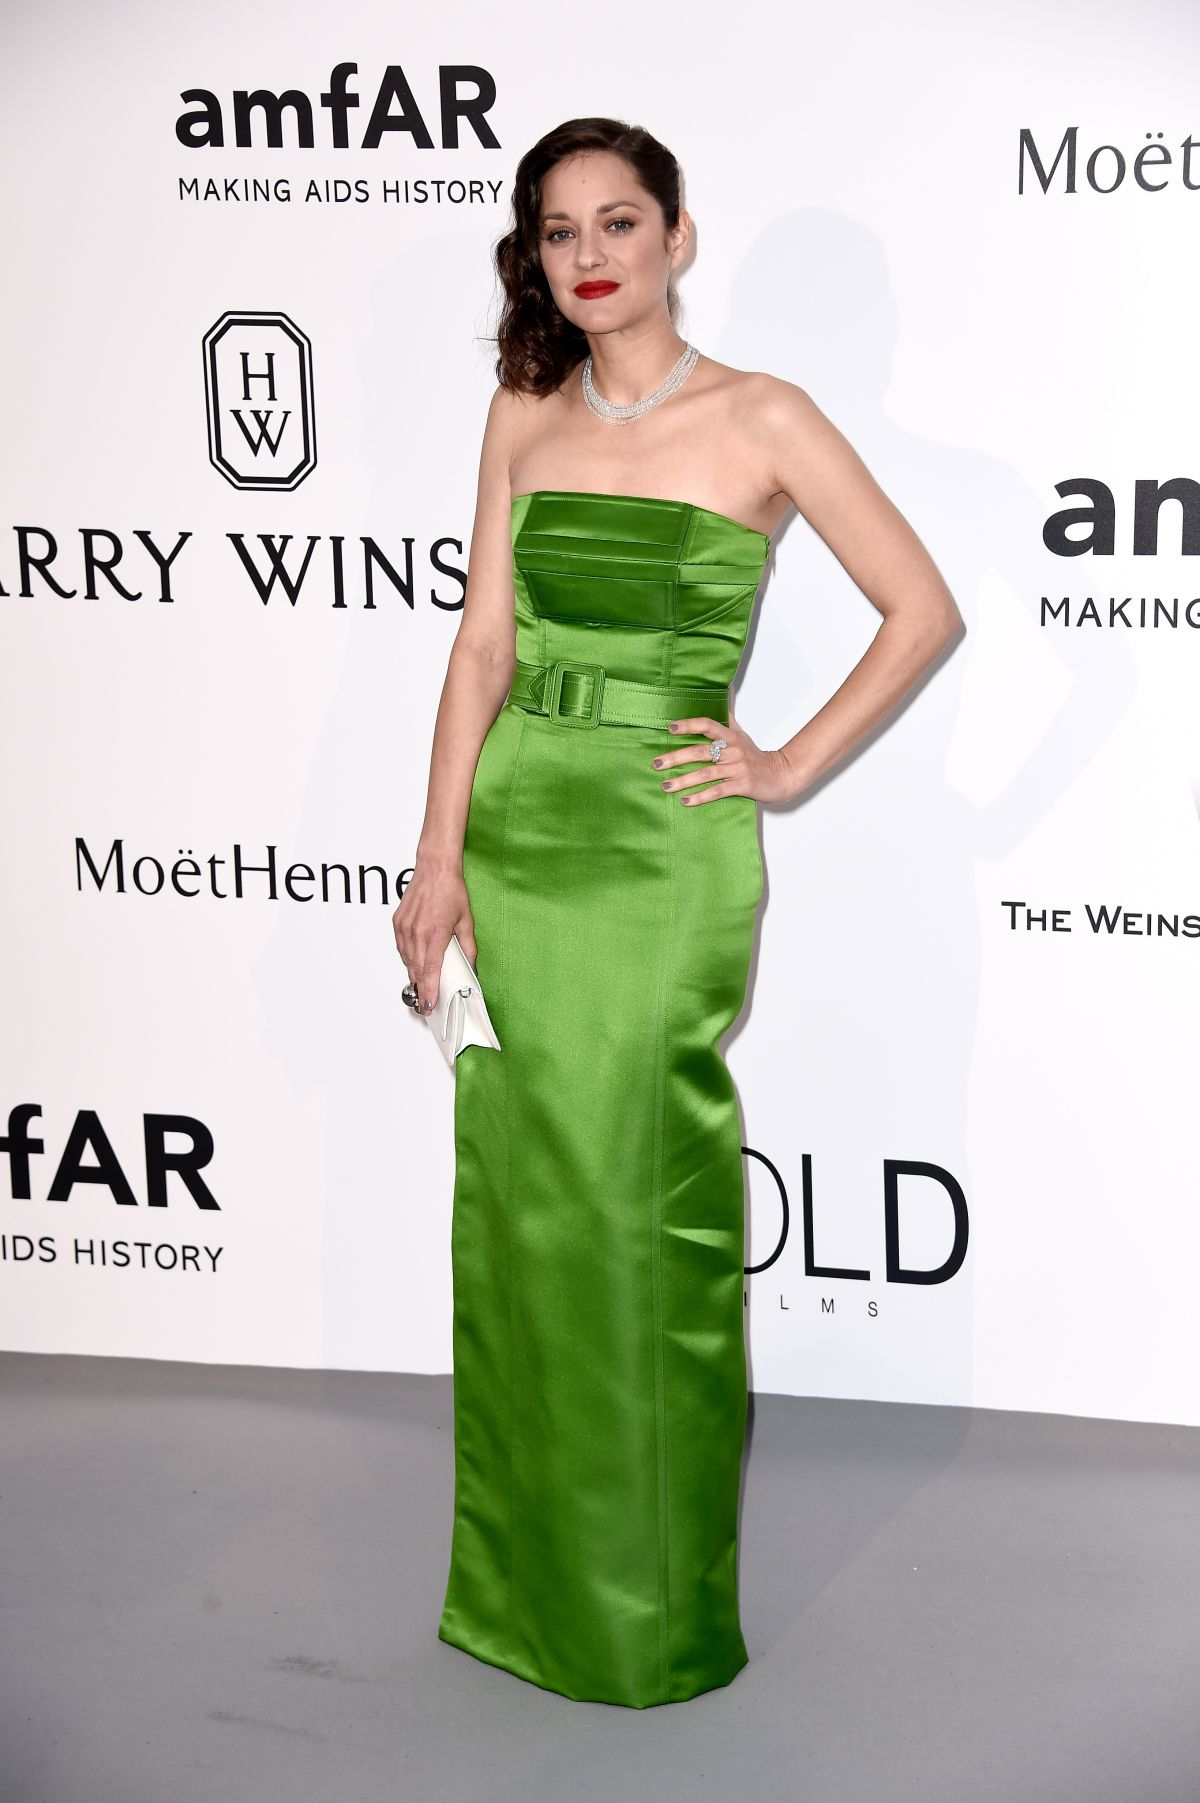 marion-cotillard-at-amfar-s-2015-cinema-against-aids-gala-in-cap-d-antibes_4.jpg